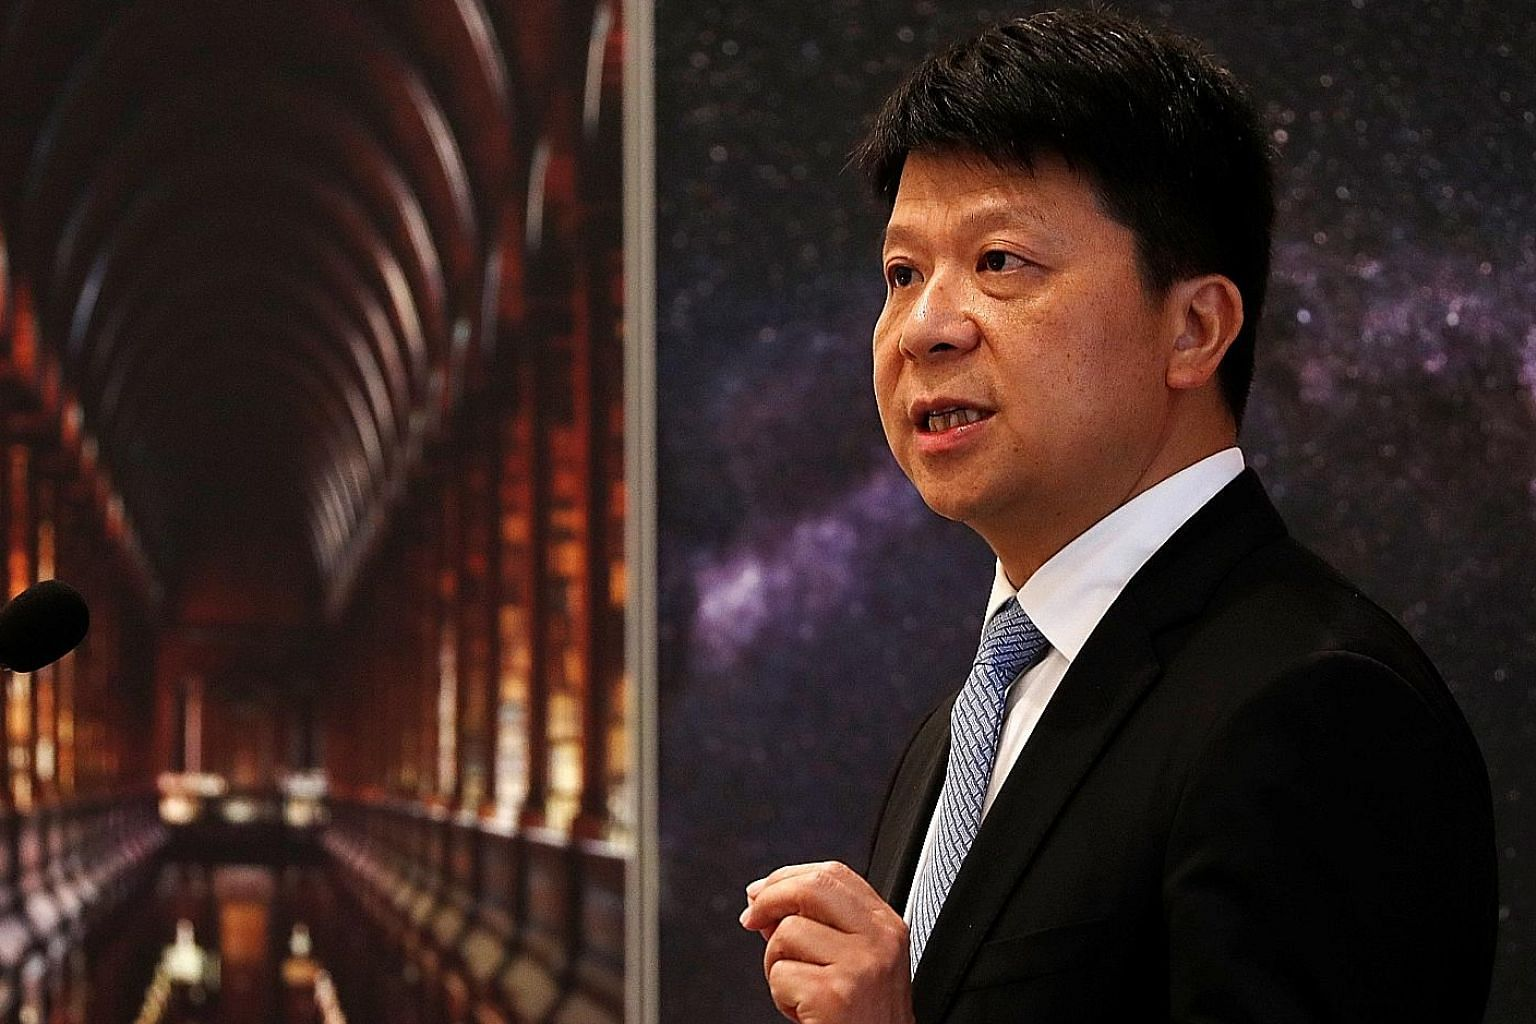 Huawei's rotating chairman Guo Ping said the company had nothing to do with the global spate of cyber-security incidents in the past two years, and that the US was out to sully the company's reputation.